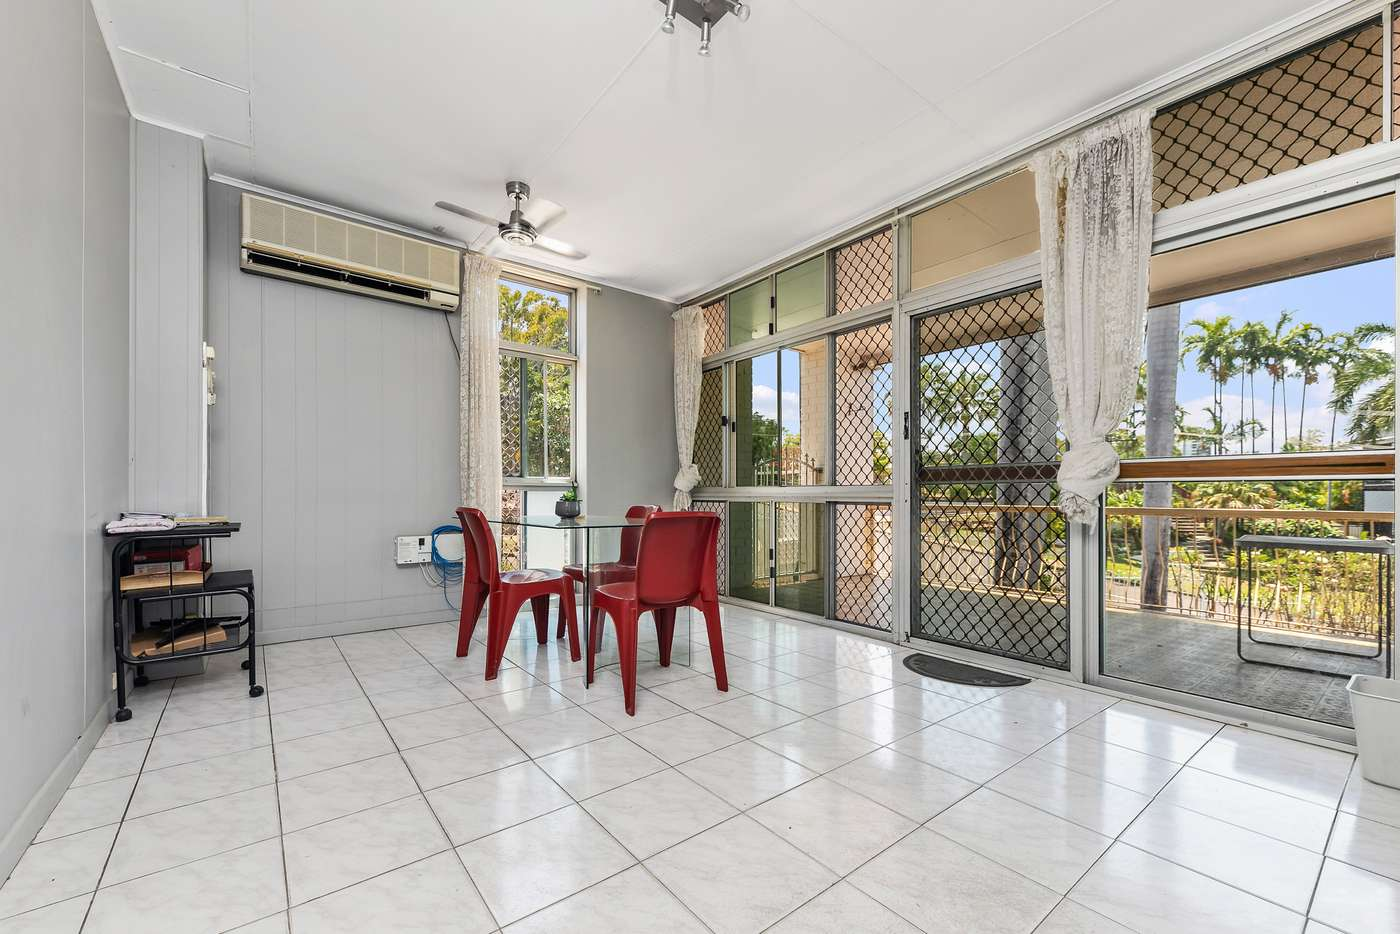 Fifth view of Homely house listing, 1 Godfrey Court, Larrakeyah NT 820